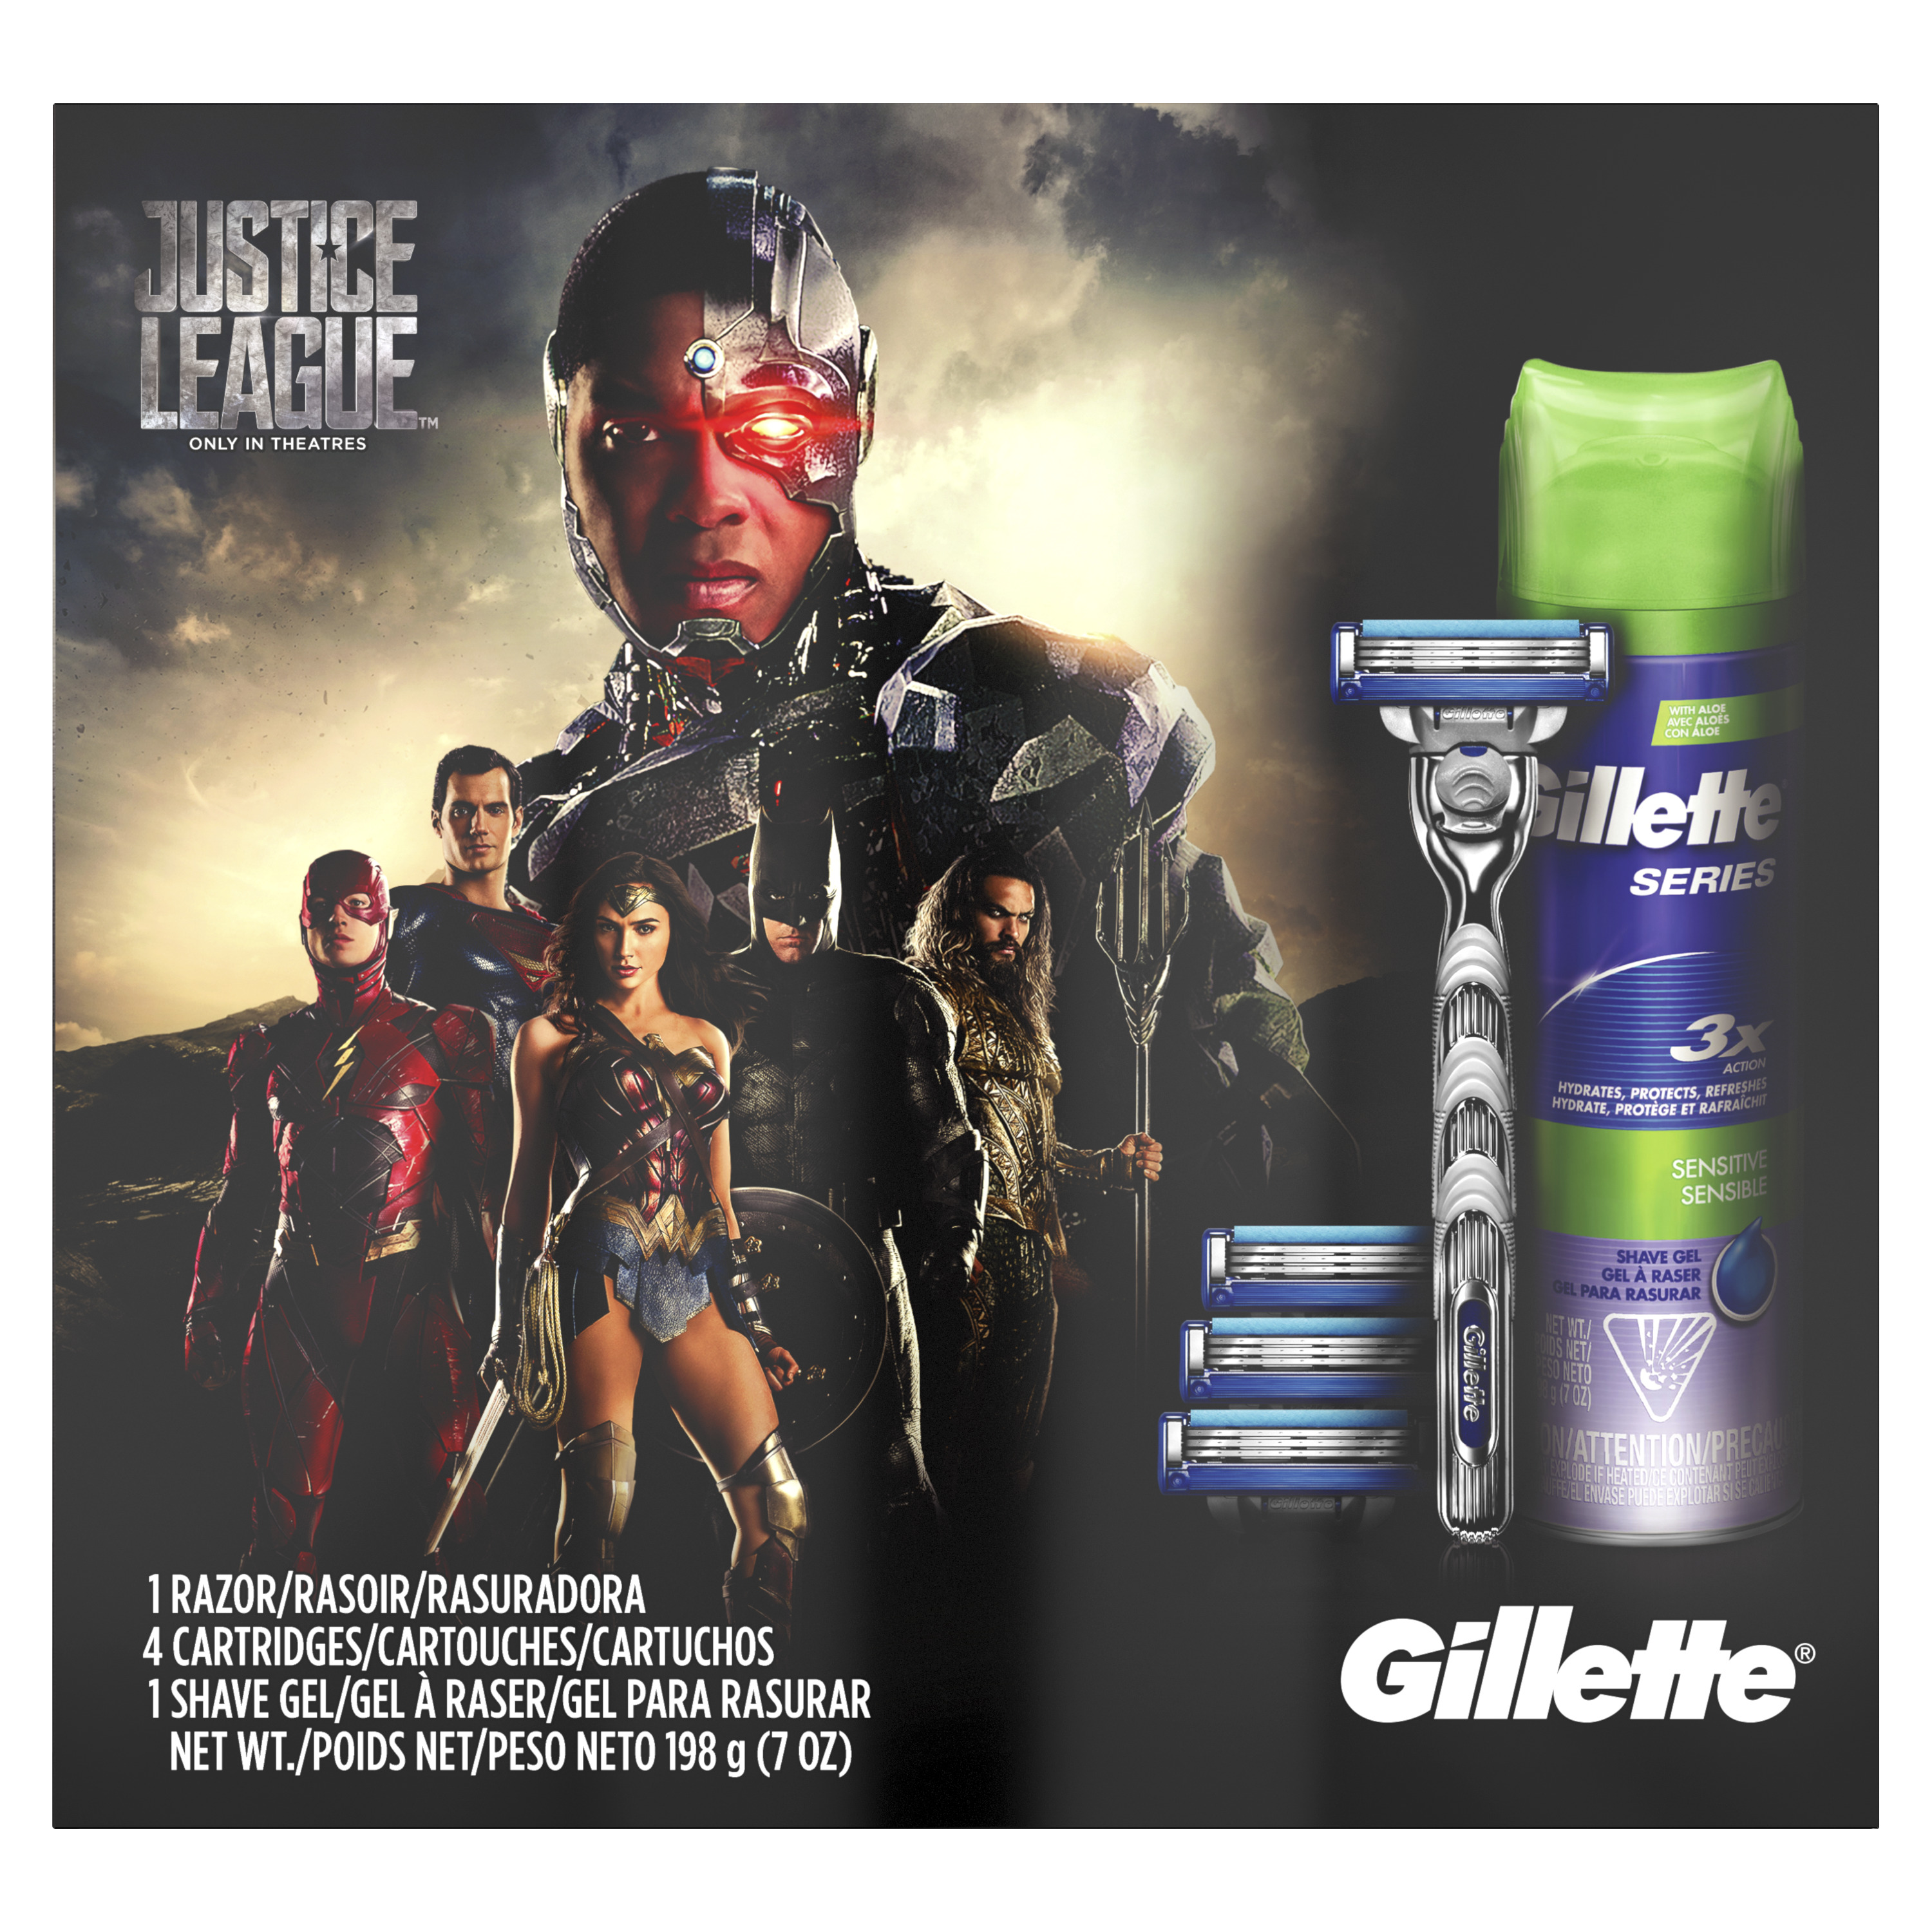 Gillette Mach3 Turbo Razor, 4 Razor Blade Cartridges, Gillette Series Sensitive Shave Gel Gift Set - 6 Pc